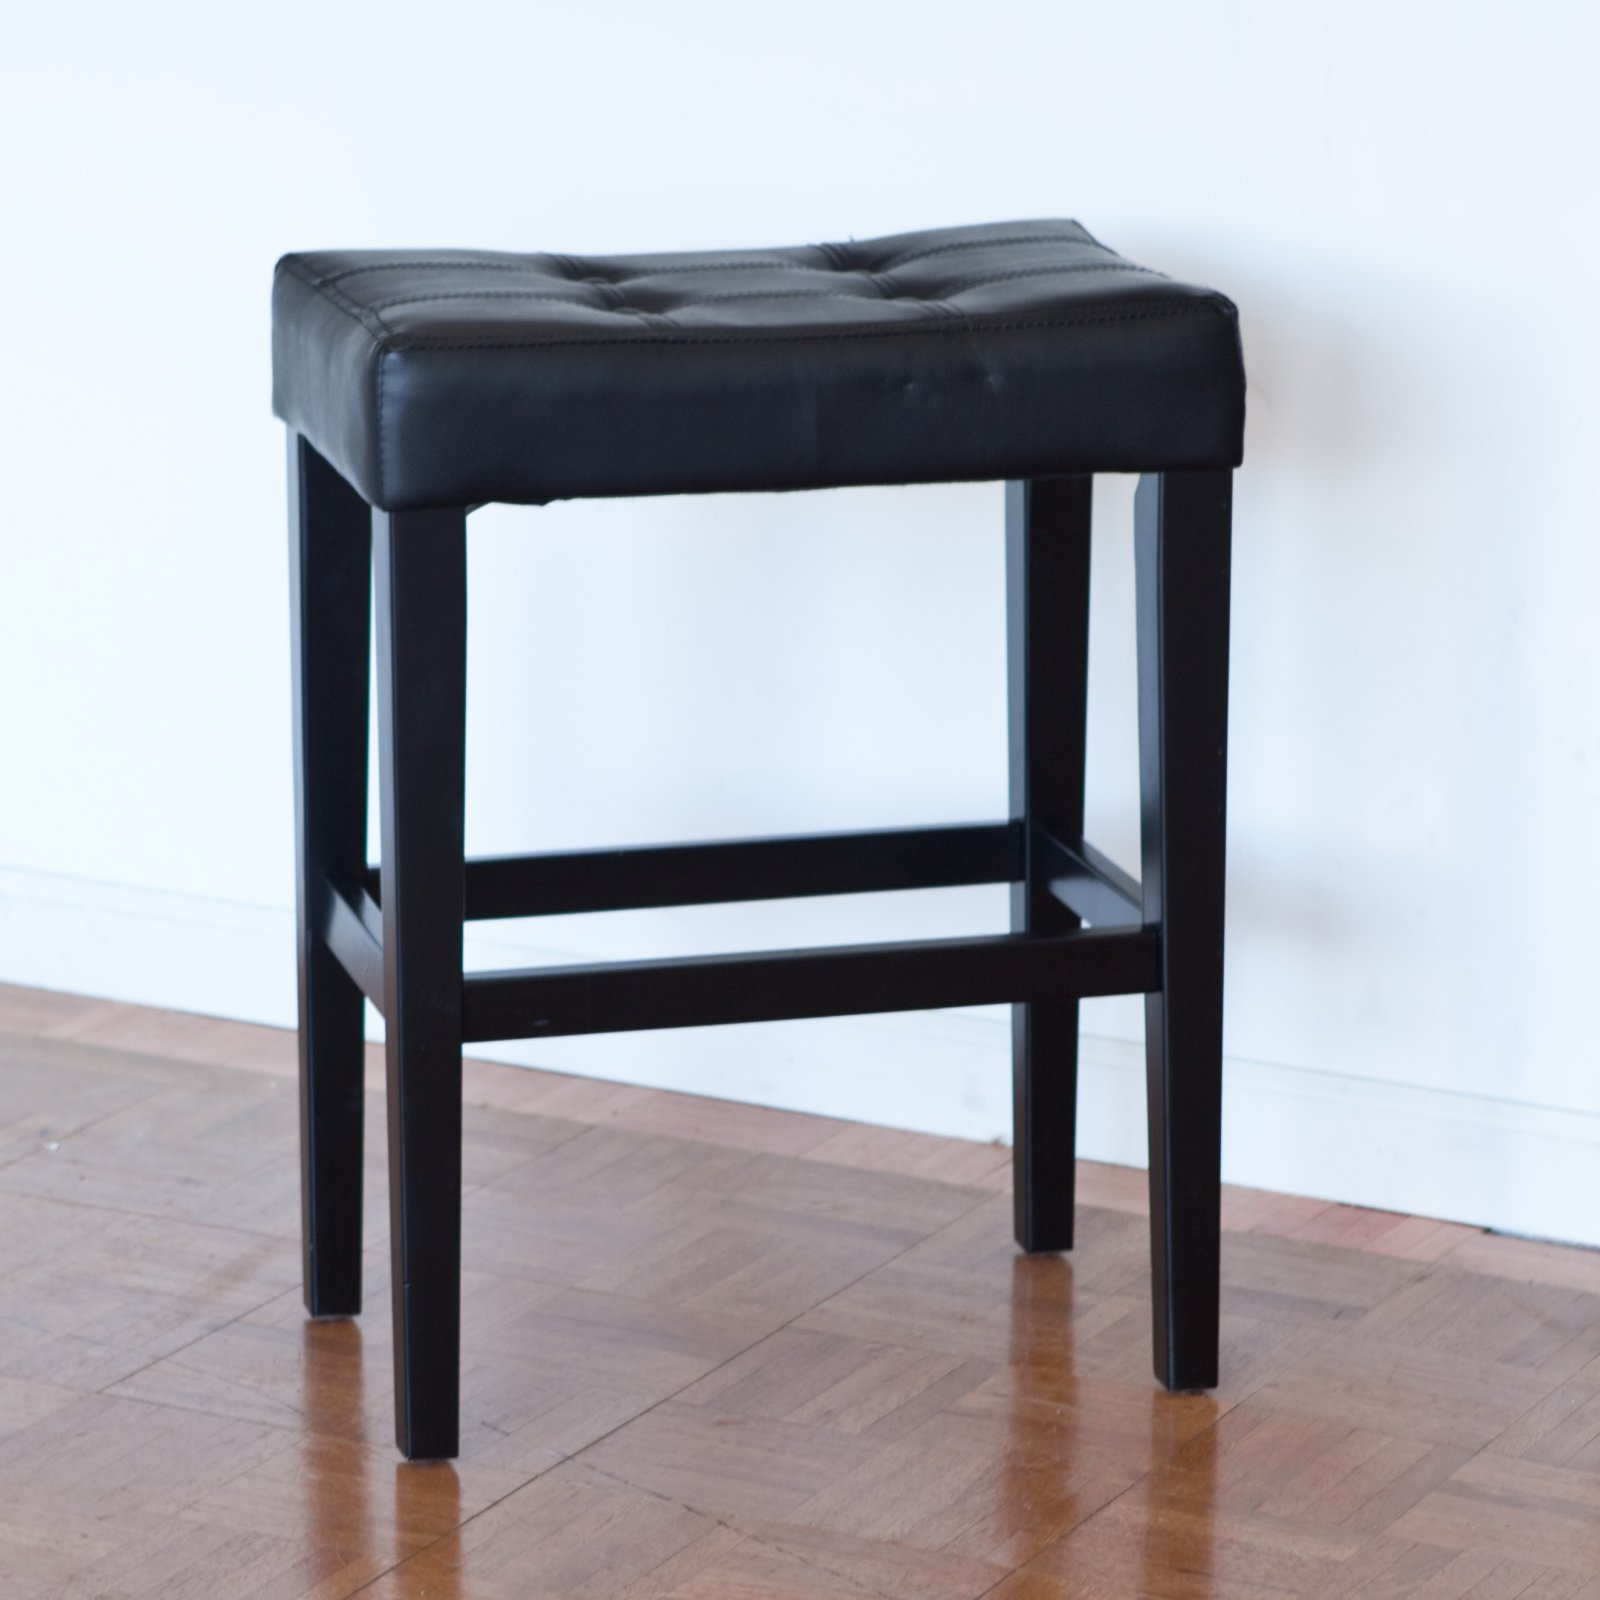 Palazzo 26 Inch Saddle Counter Stool - Black